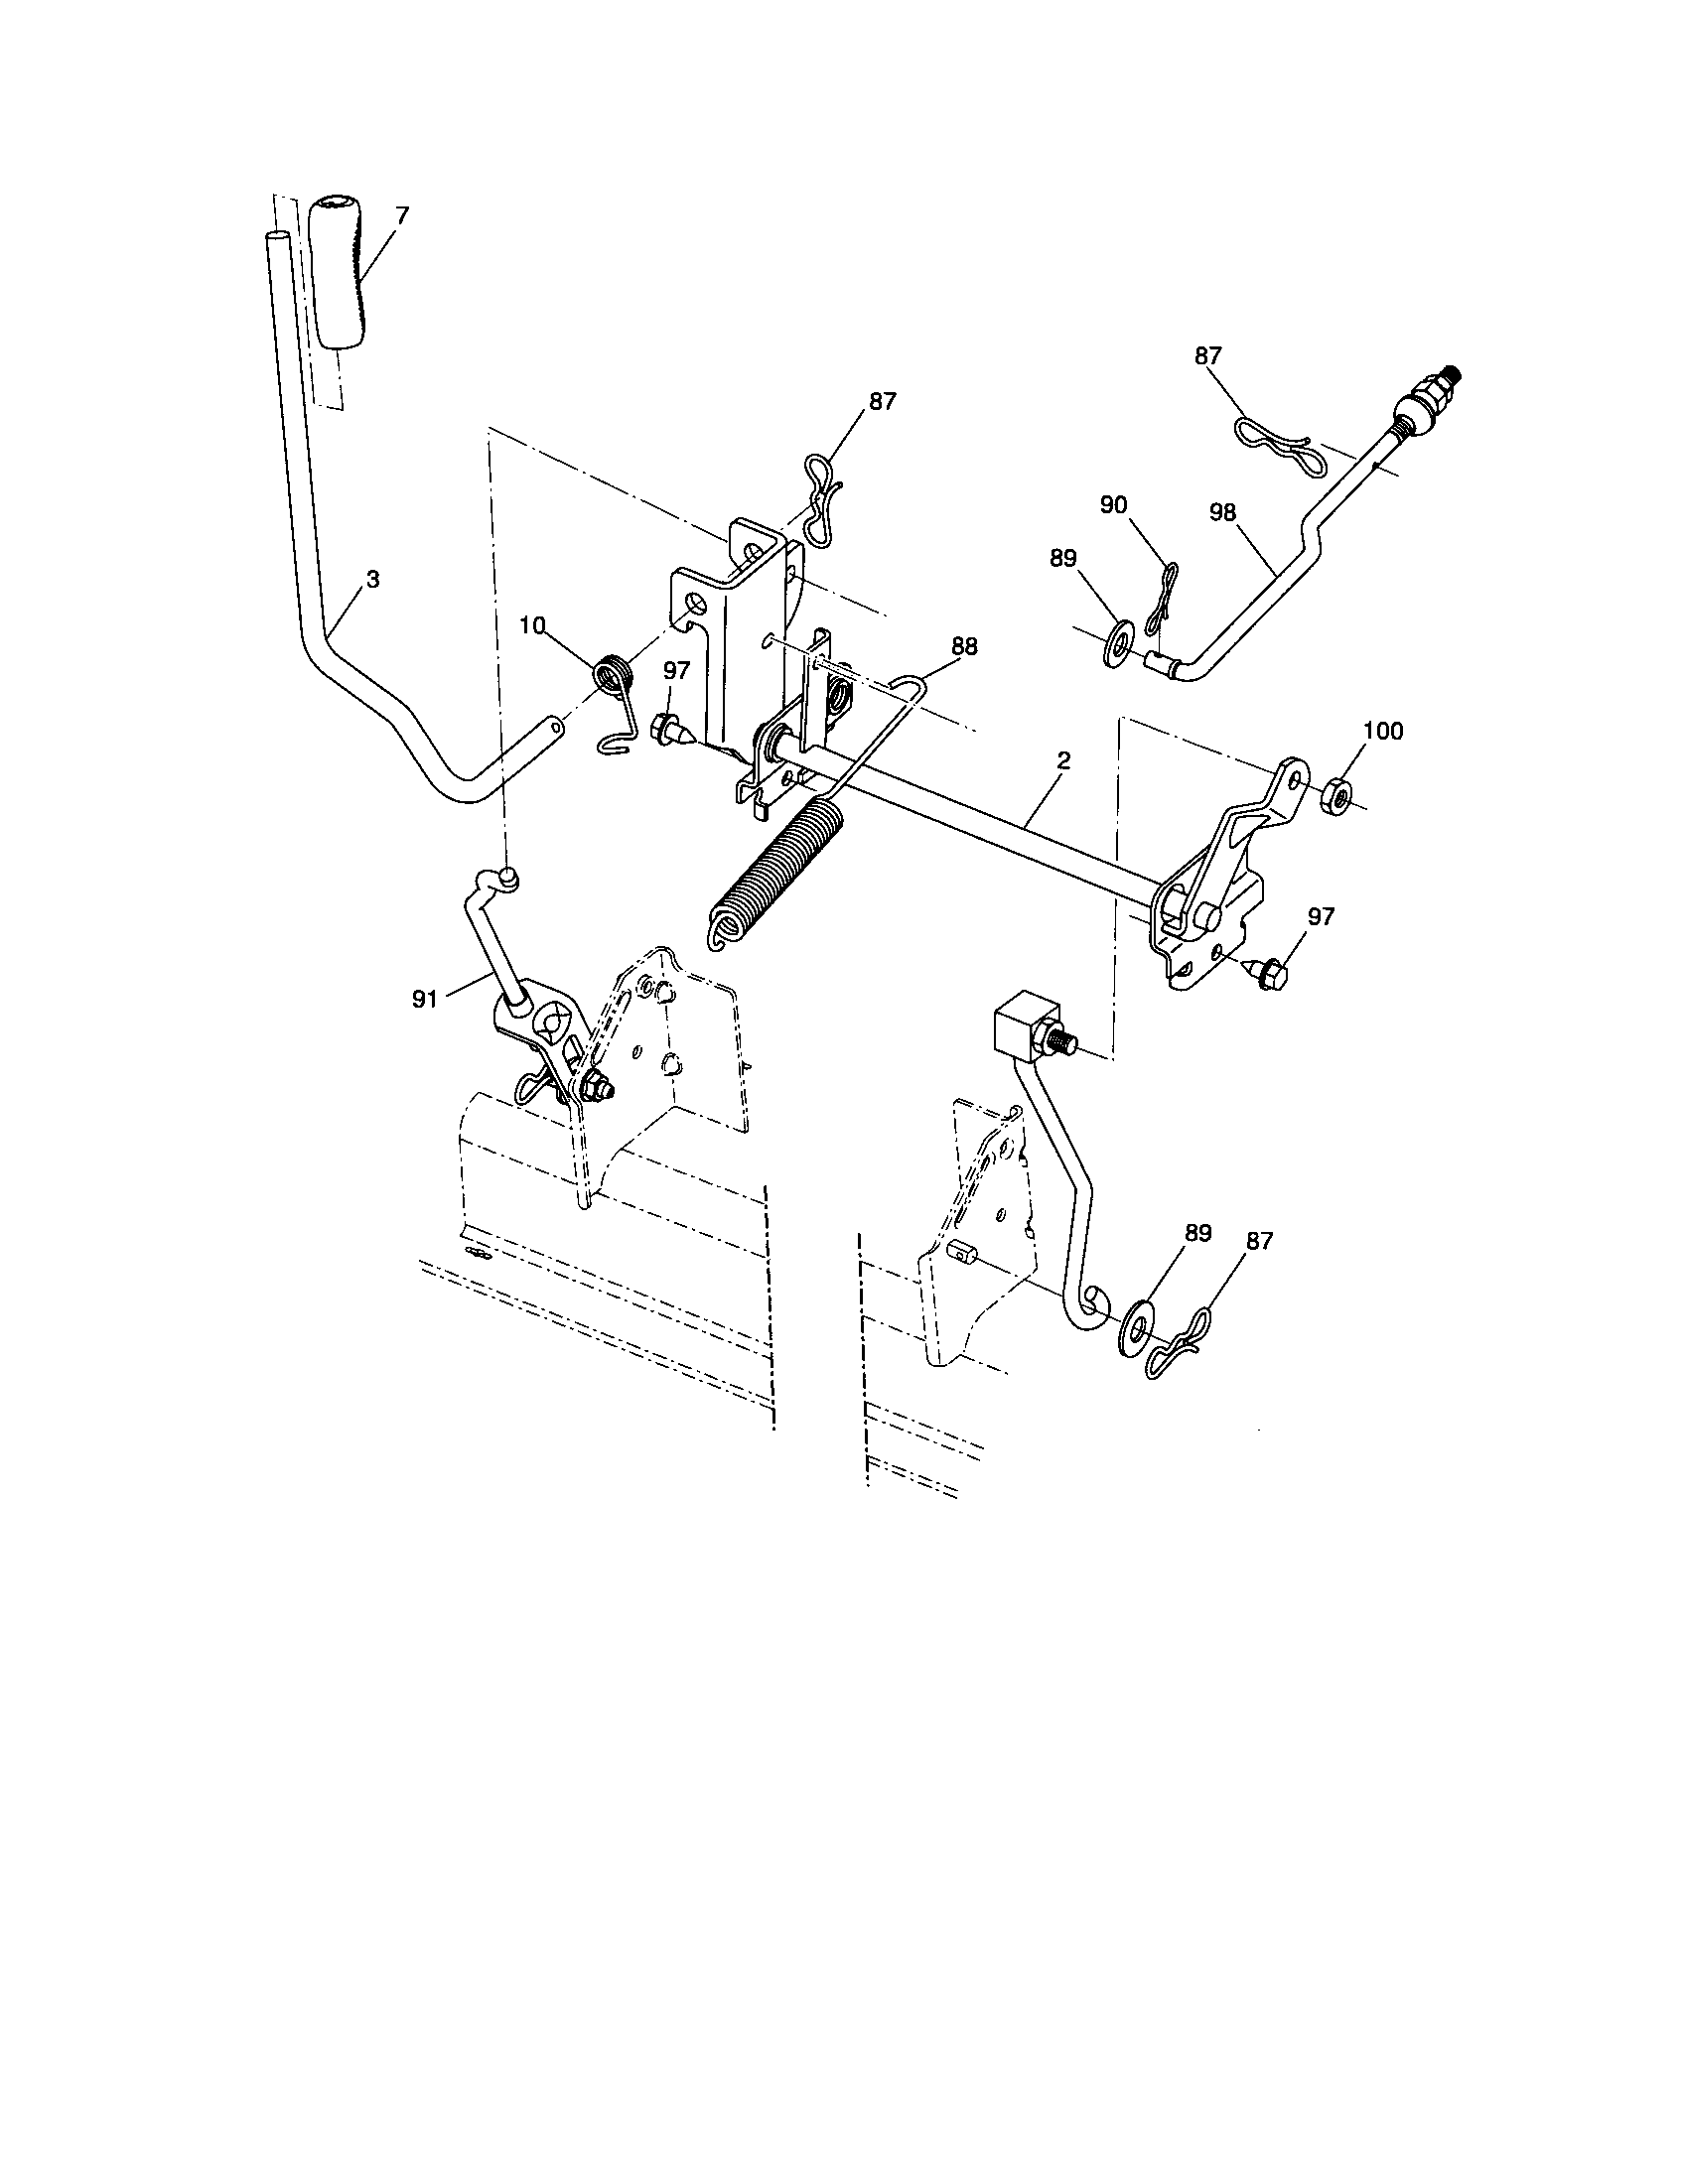 Wiring Diagram For Craftsman 917 276922 Riding Lawn Mower